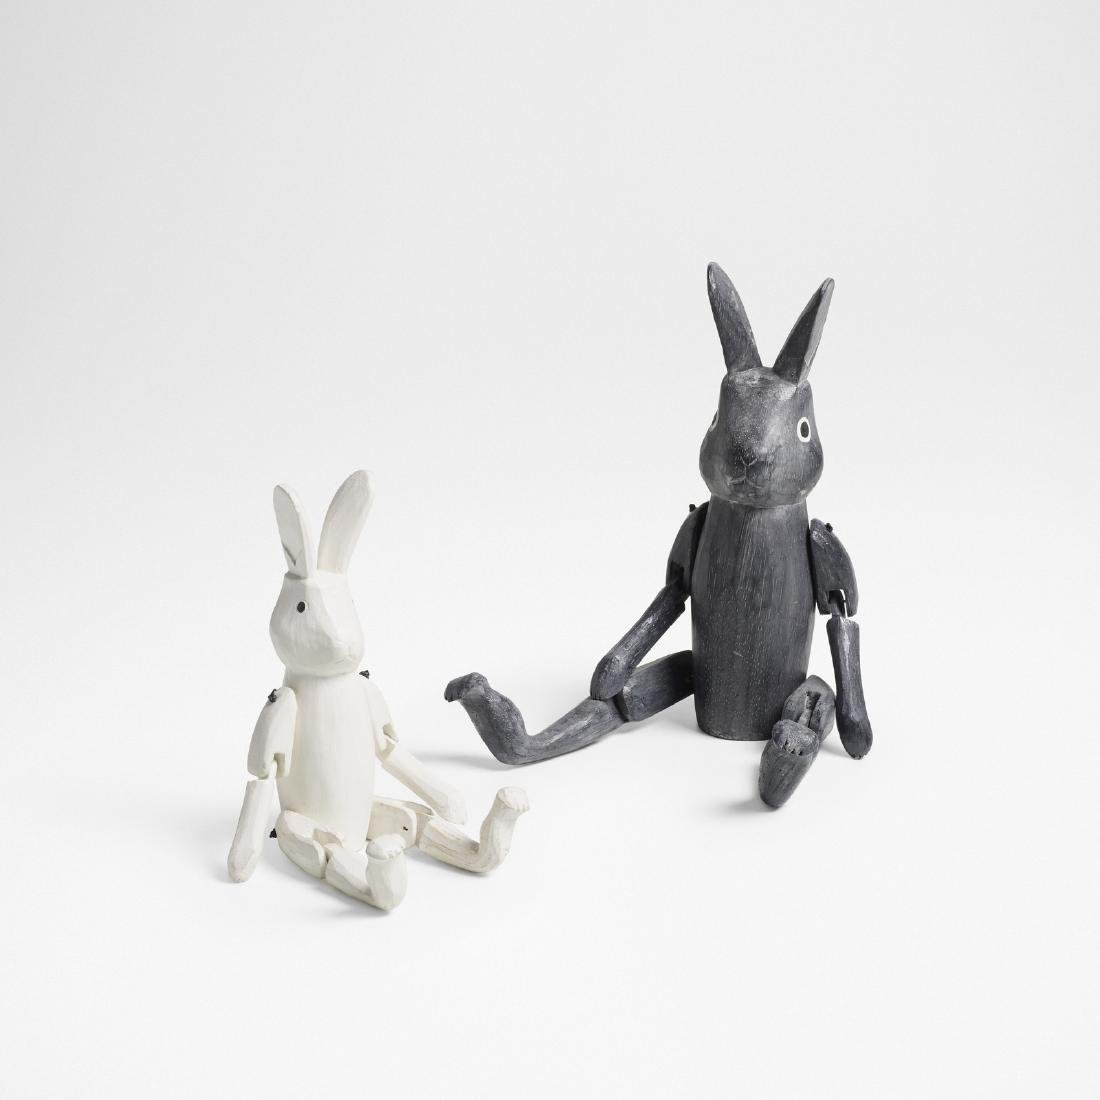 Japanese, carved rabbits, set of two